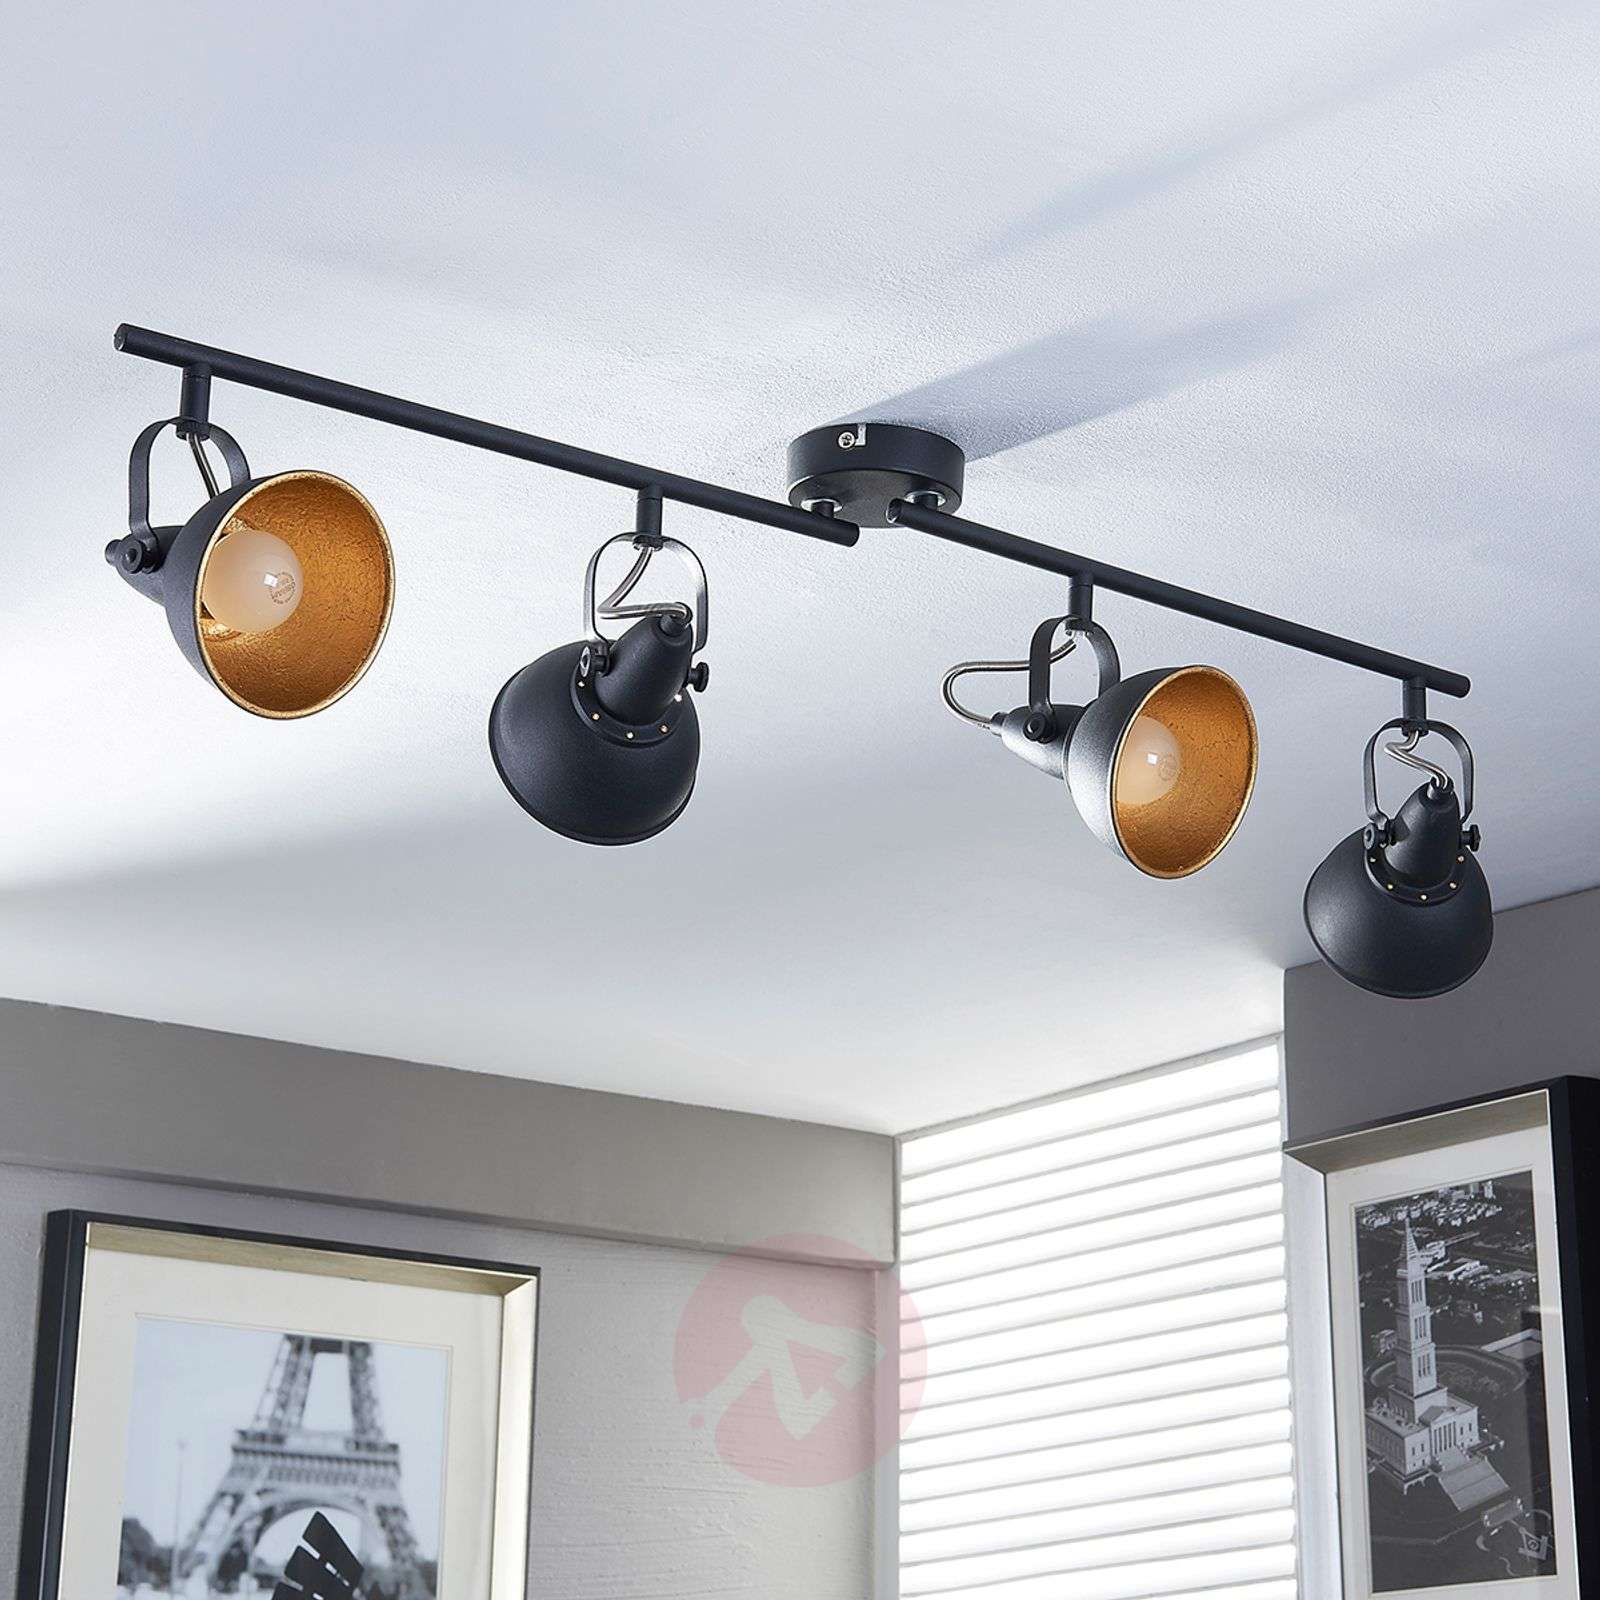 Black and golden kitchen spotlight Julin, 4 bulbs-9620732-03